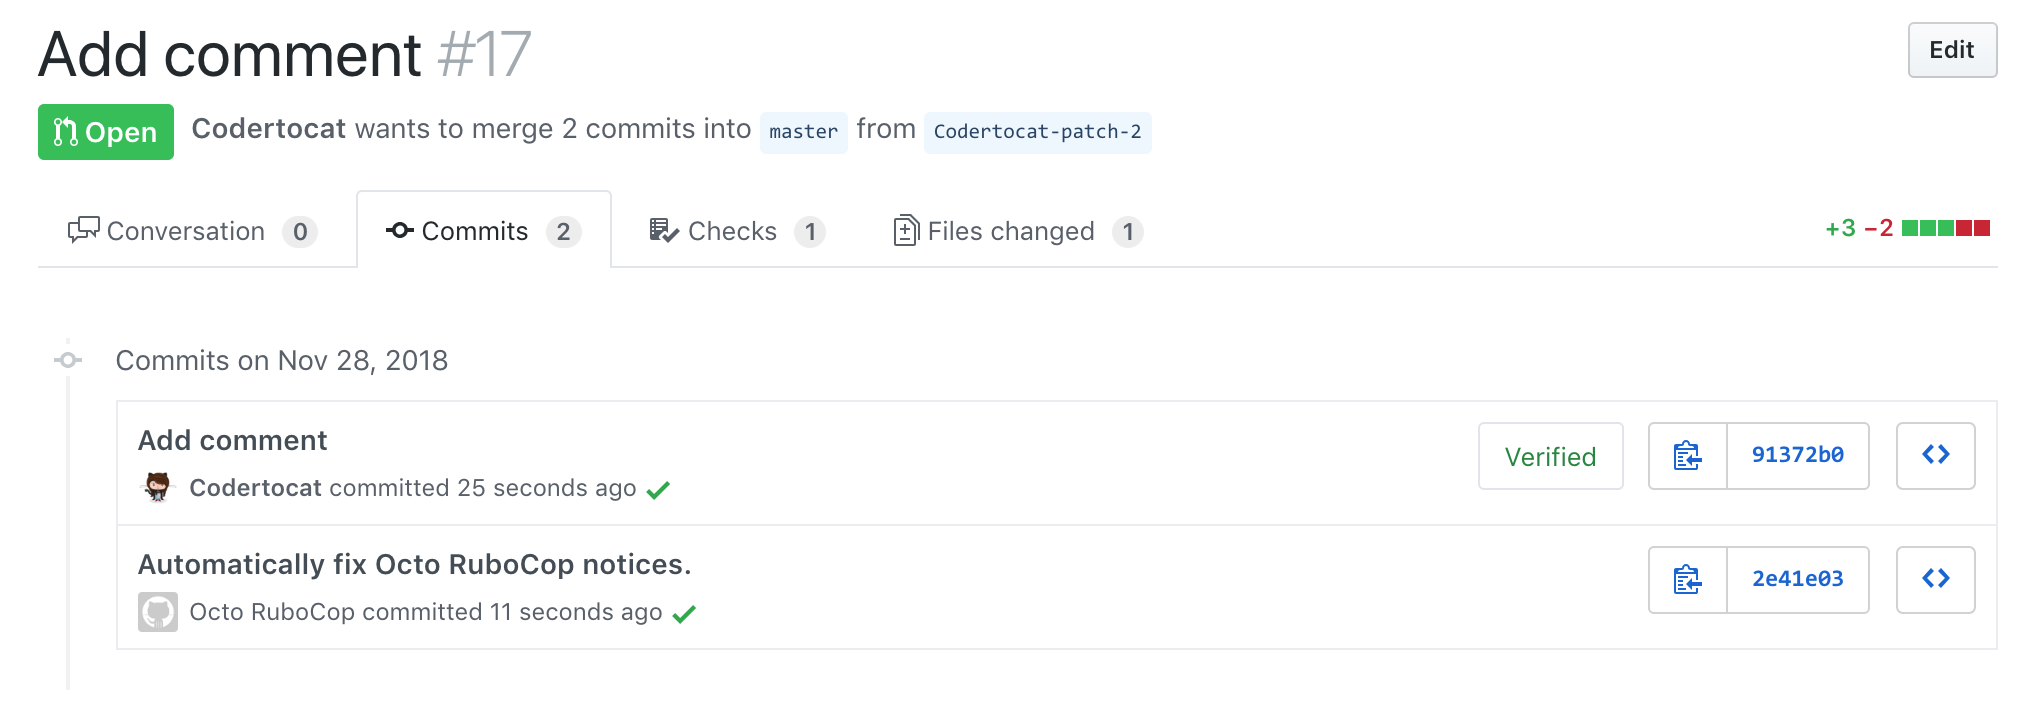 A new commit to automatically fix Octo RuboCop notices